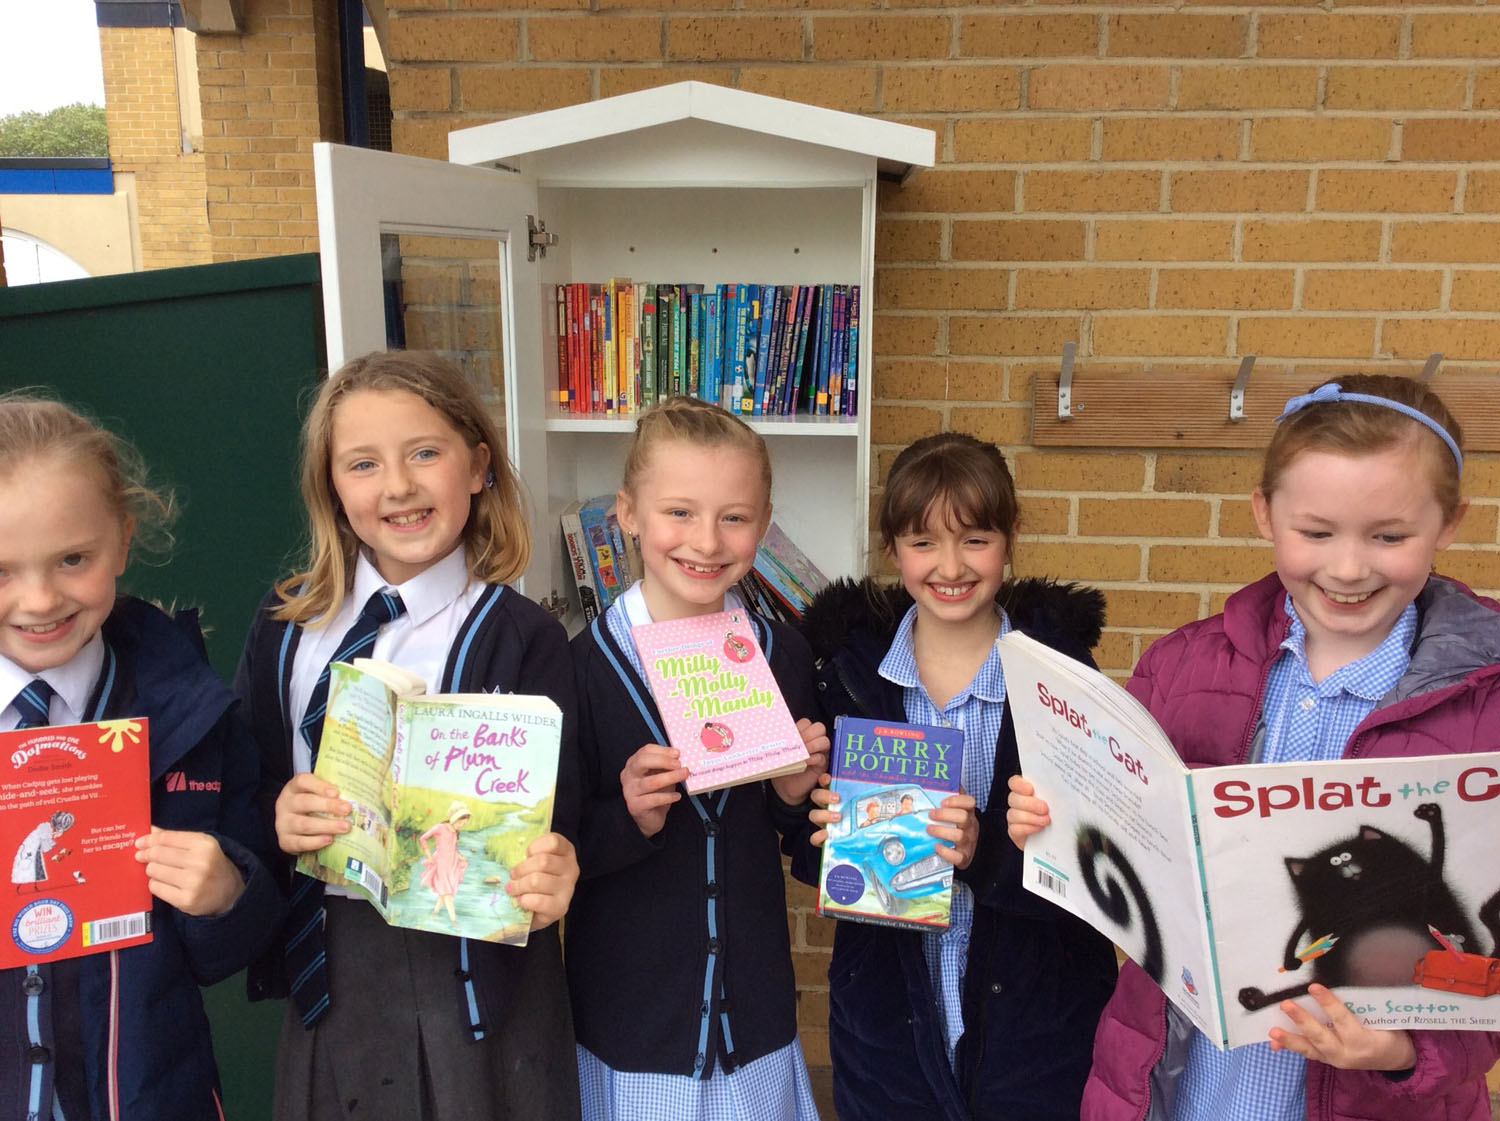 Inspiring a love of reading at St. Mary's Horsforth